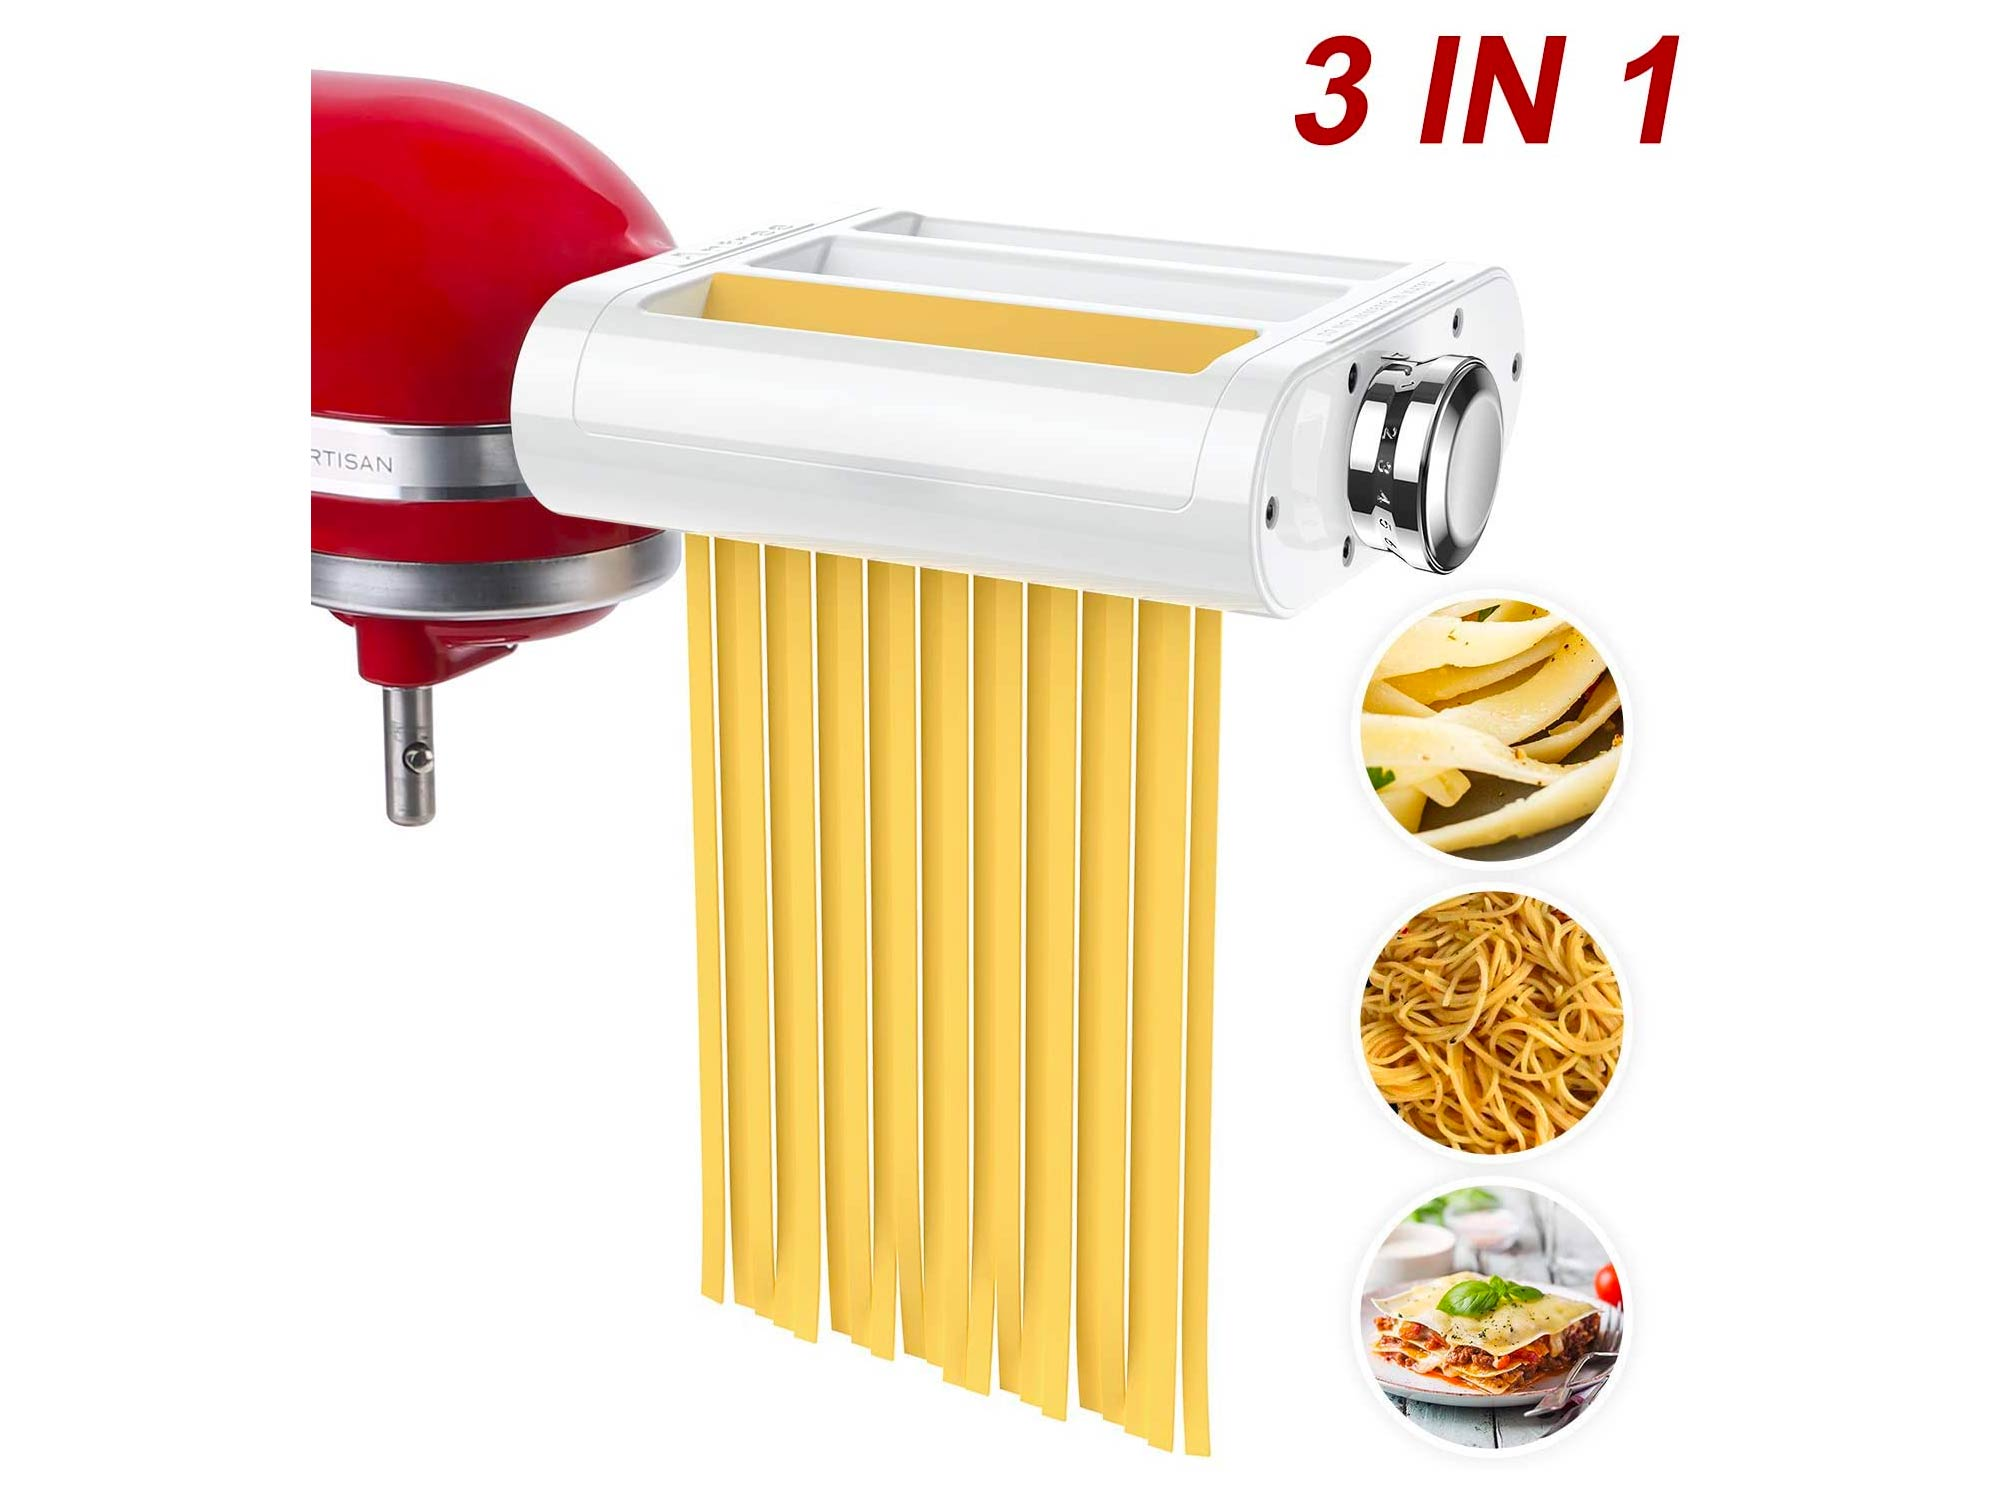 ANTREE Pasta Roller & Cutter Attachment 3-in-1 Set for KitchenAid Stand Mixers Included Pasta Sheet Roller